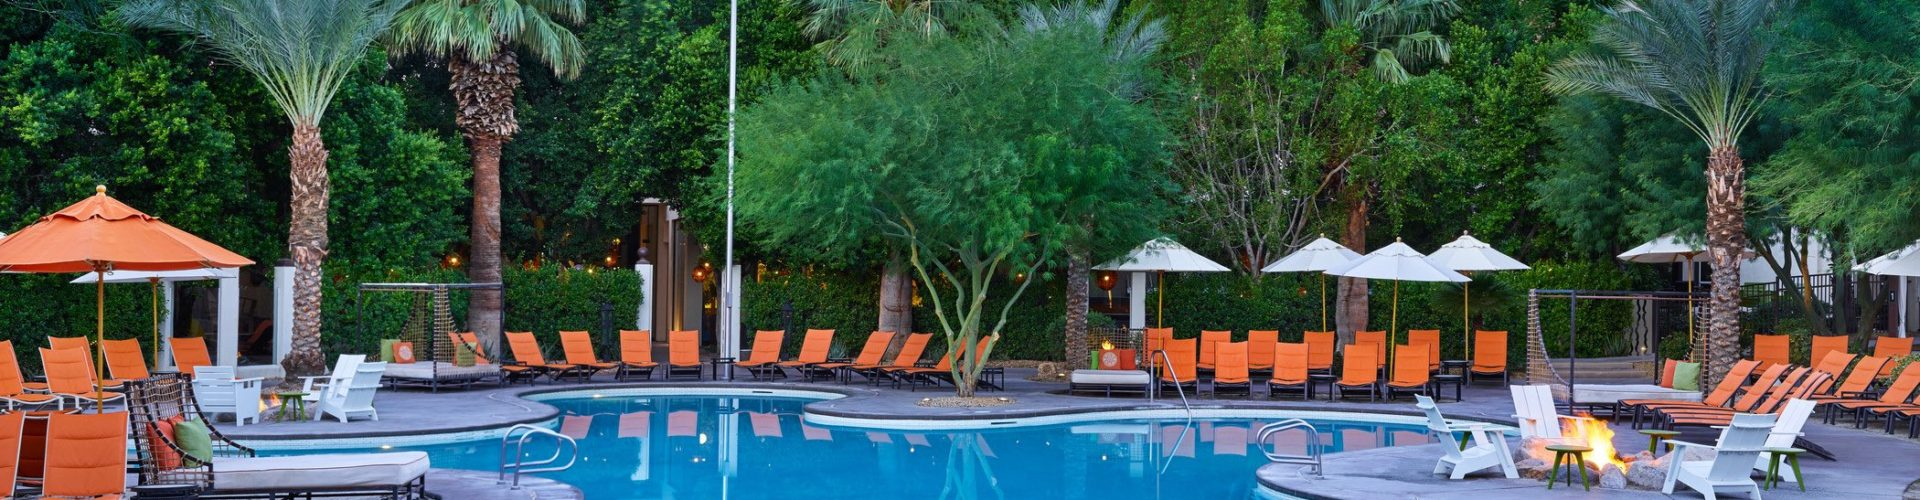 The Riviera Palm Springs Celebrates Love on a Whim